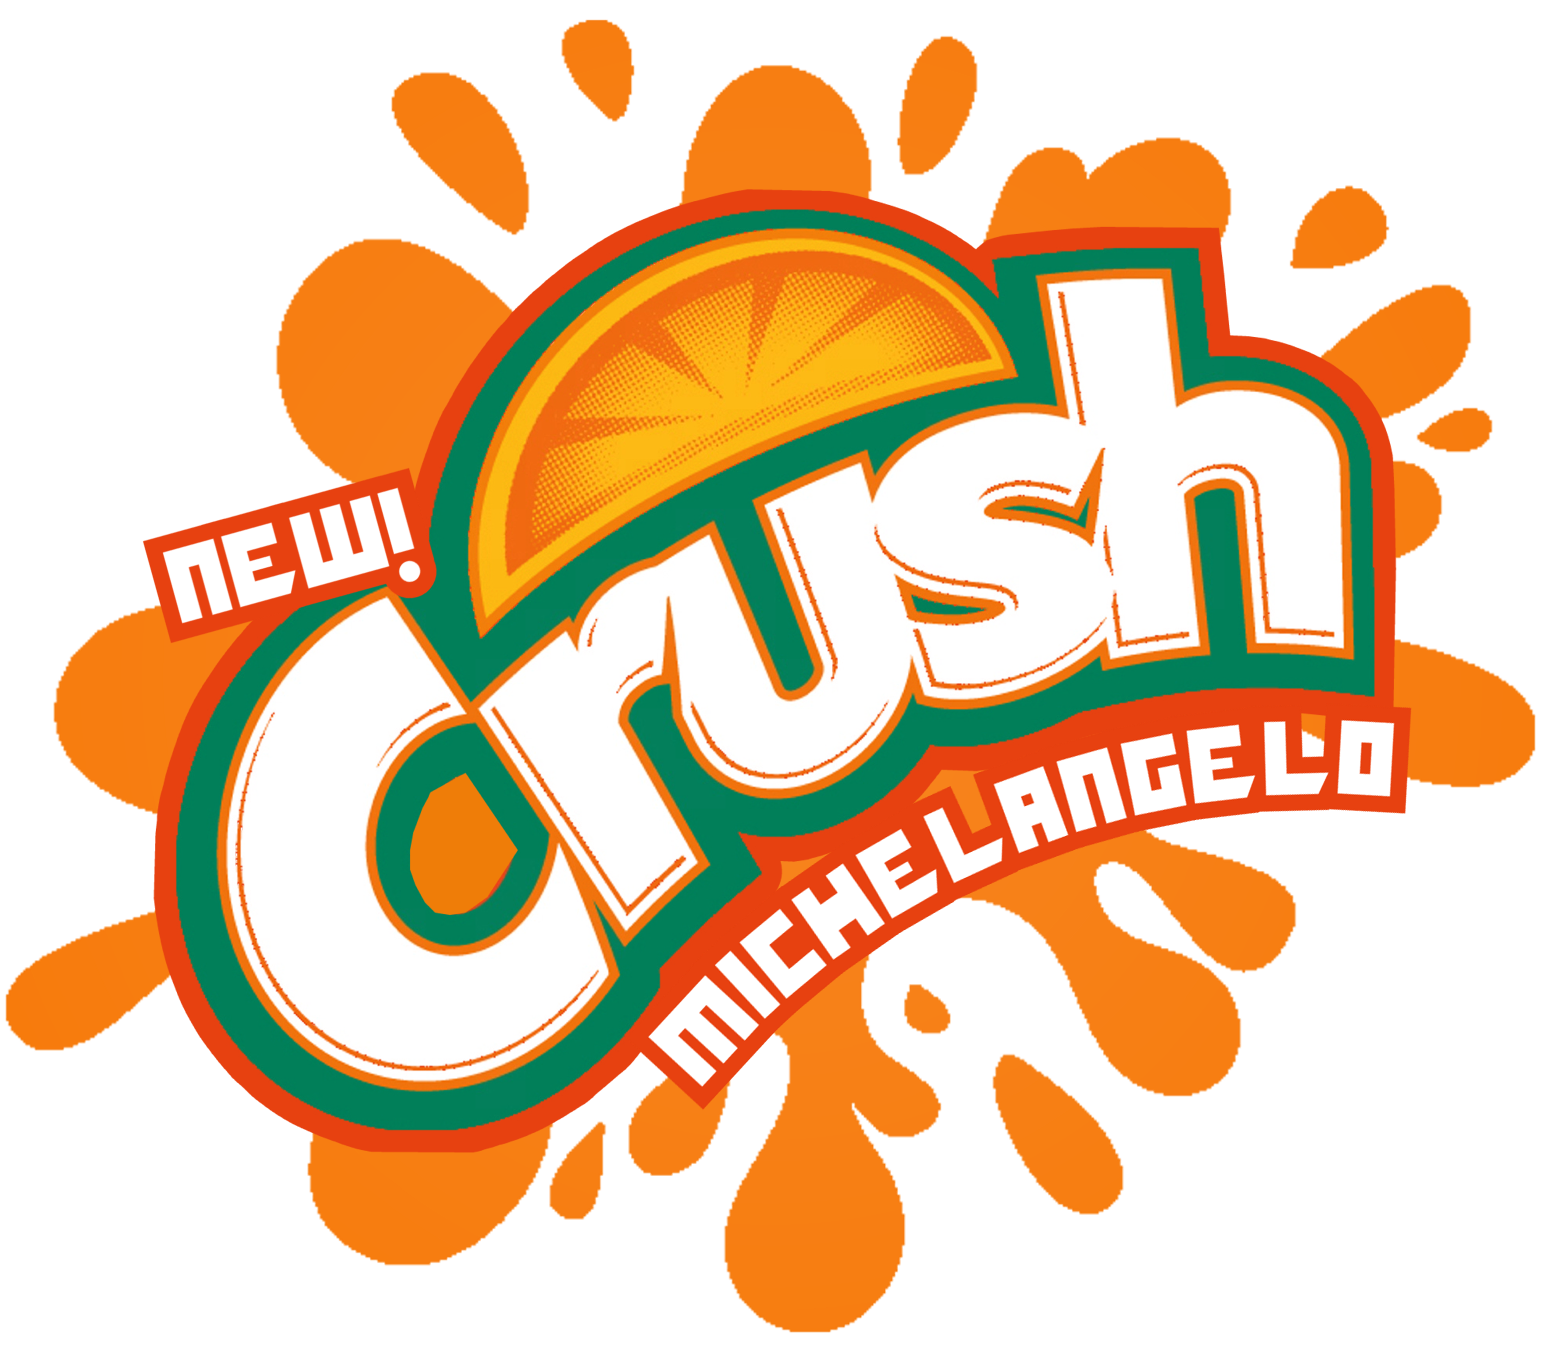 crush logos rh logolynx com crush logo png this crush login